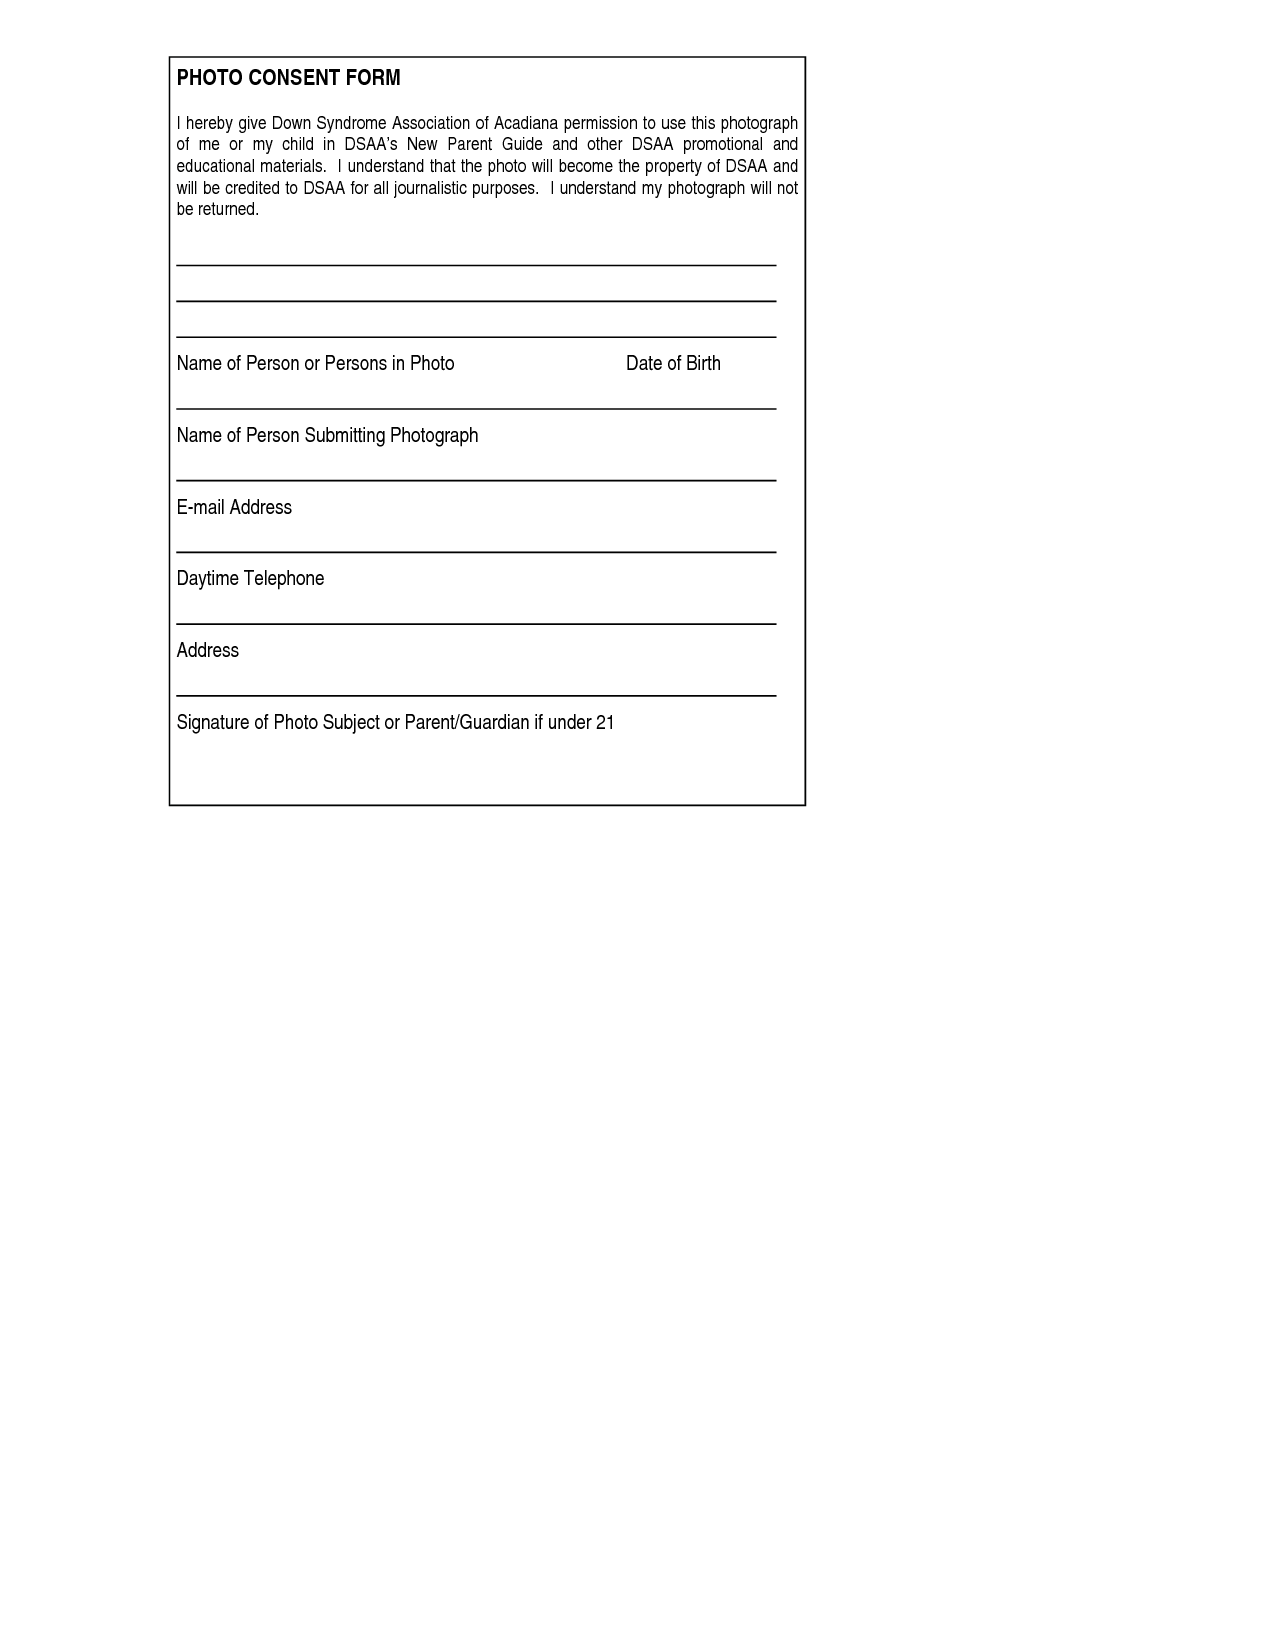 Down syndrome conferenceencyclopedia disease for Photography permission form template